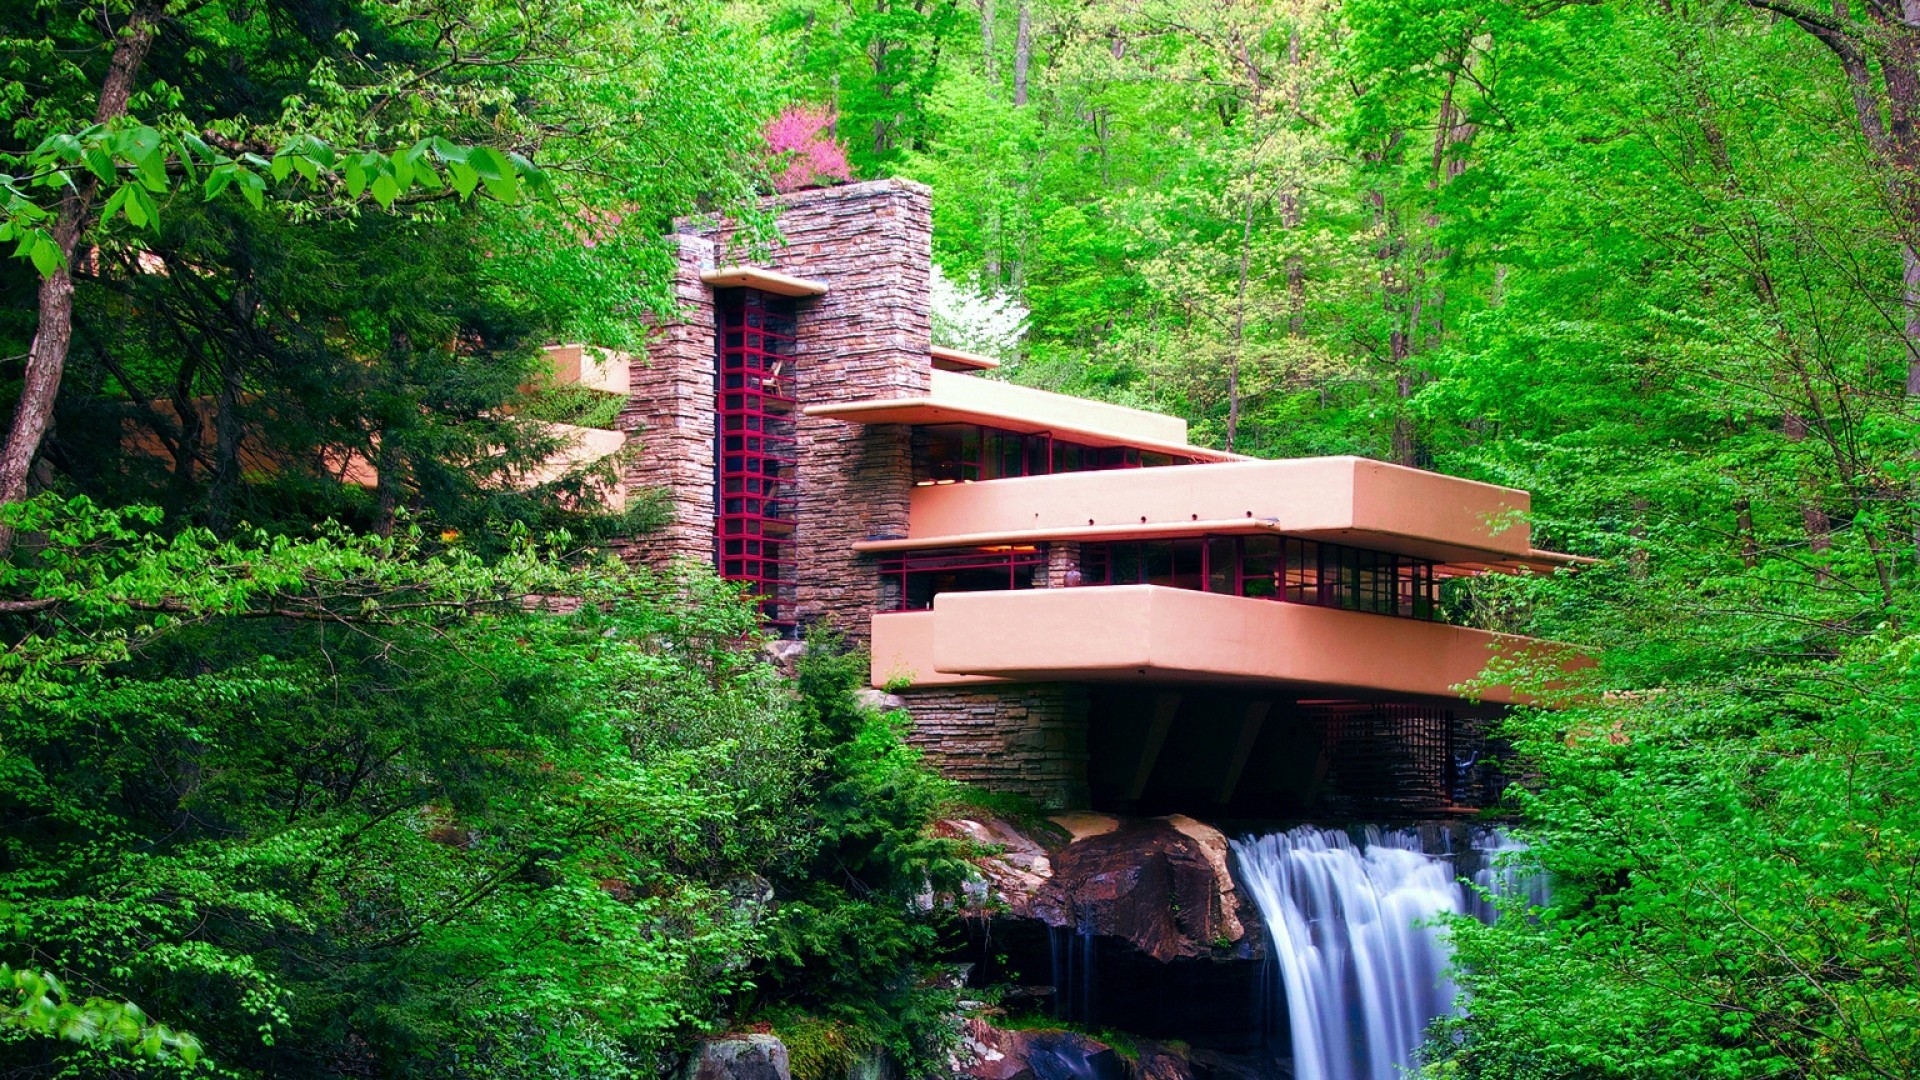 Falling Water House Usa Wallpaper Trees Landscape Forest Leaves Waterfall Garden